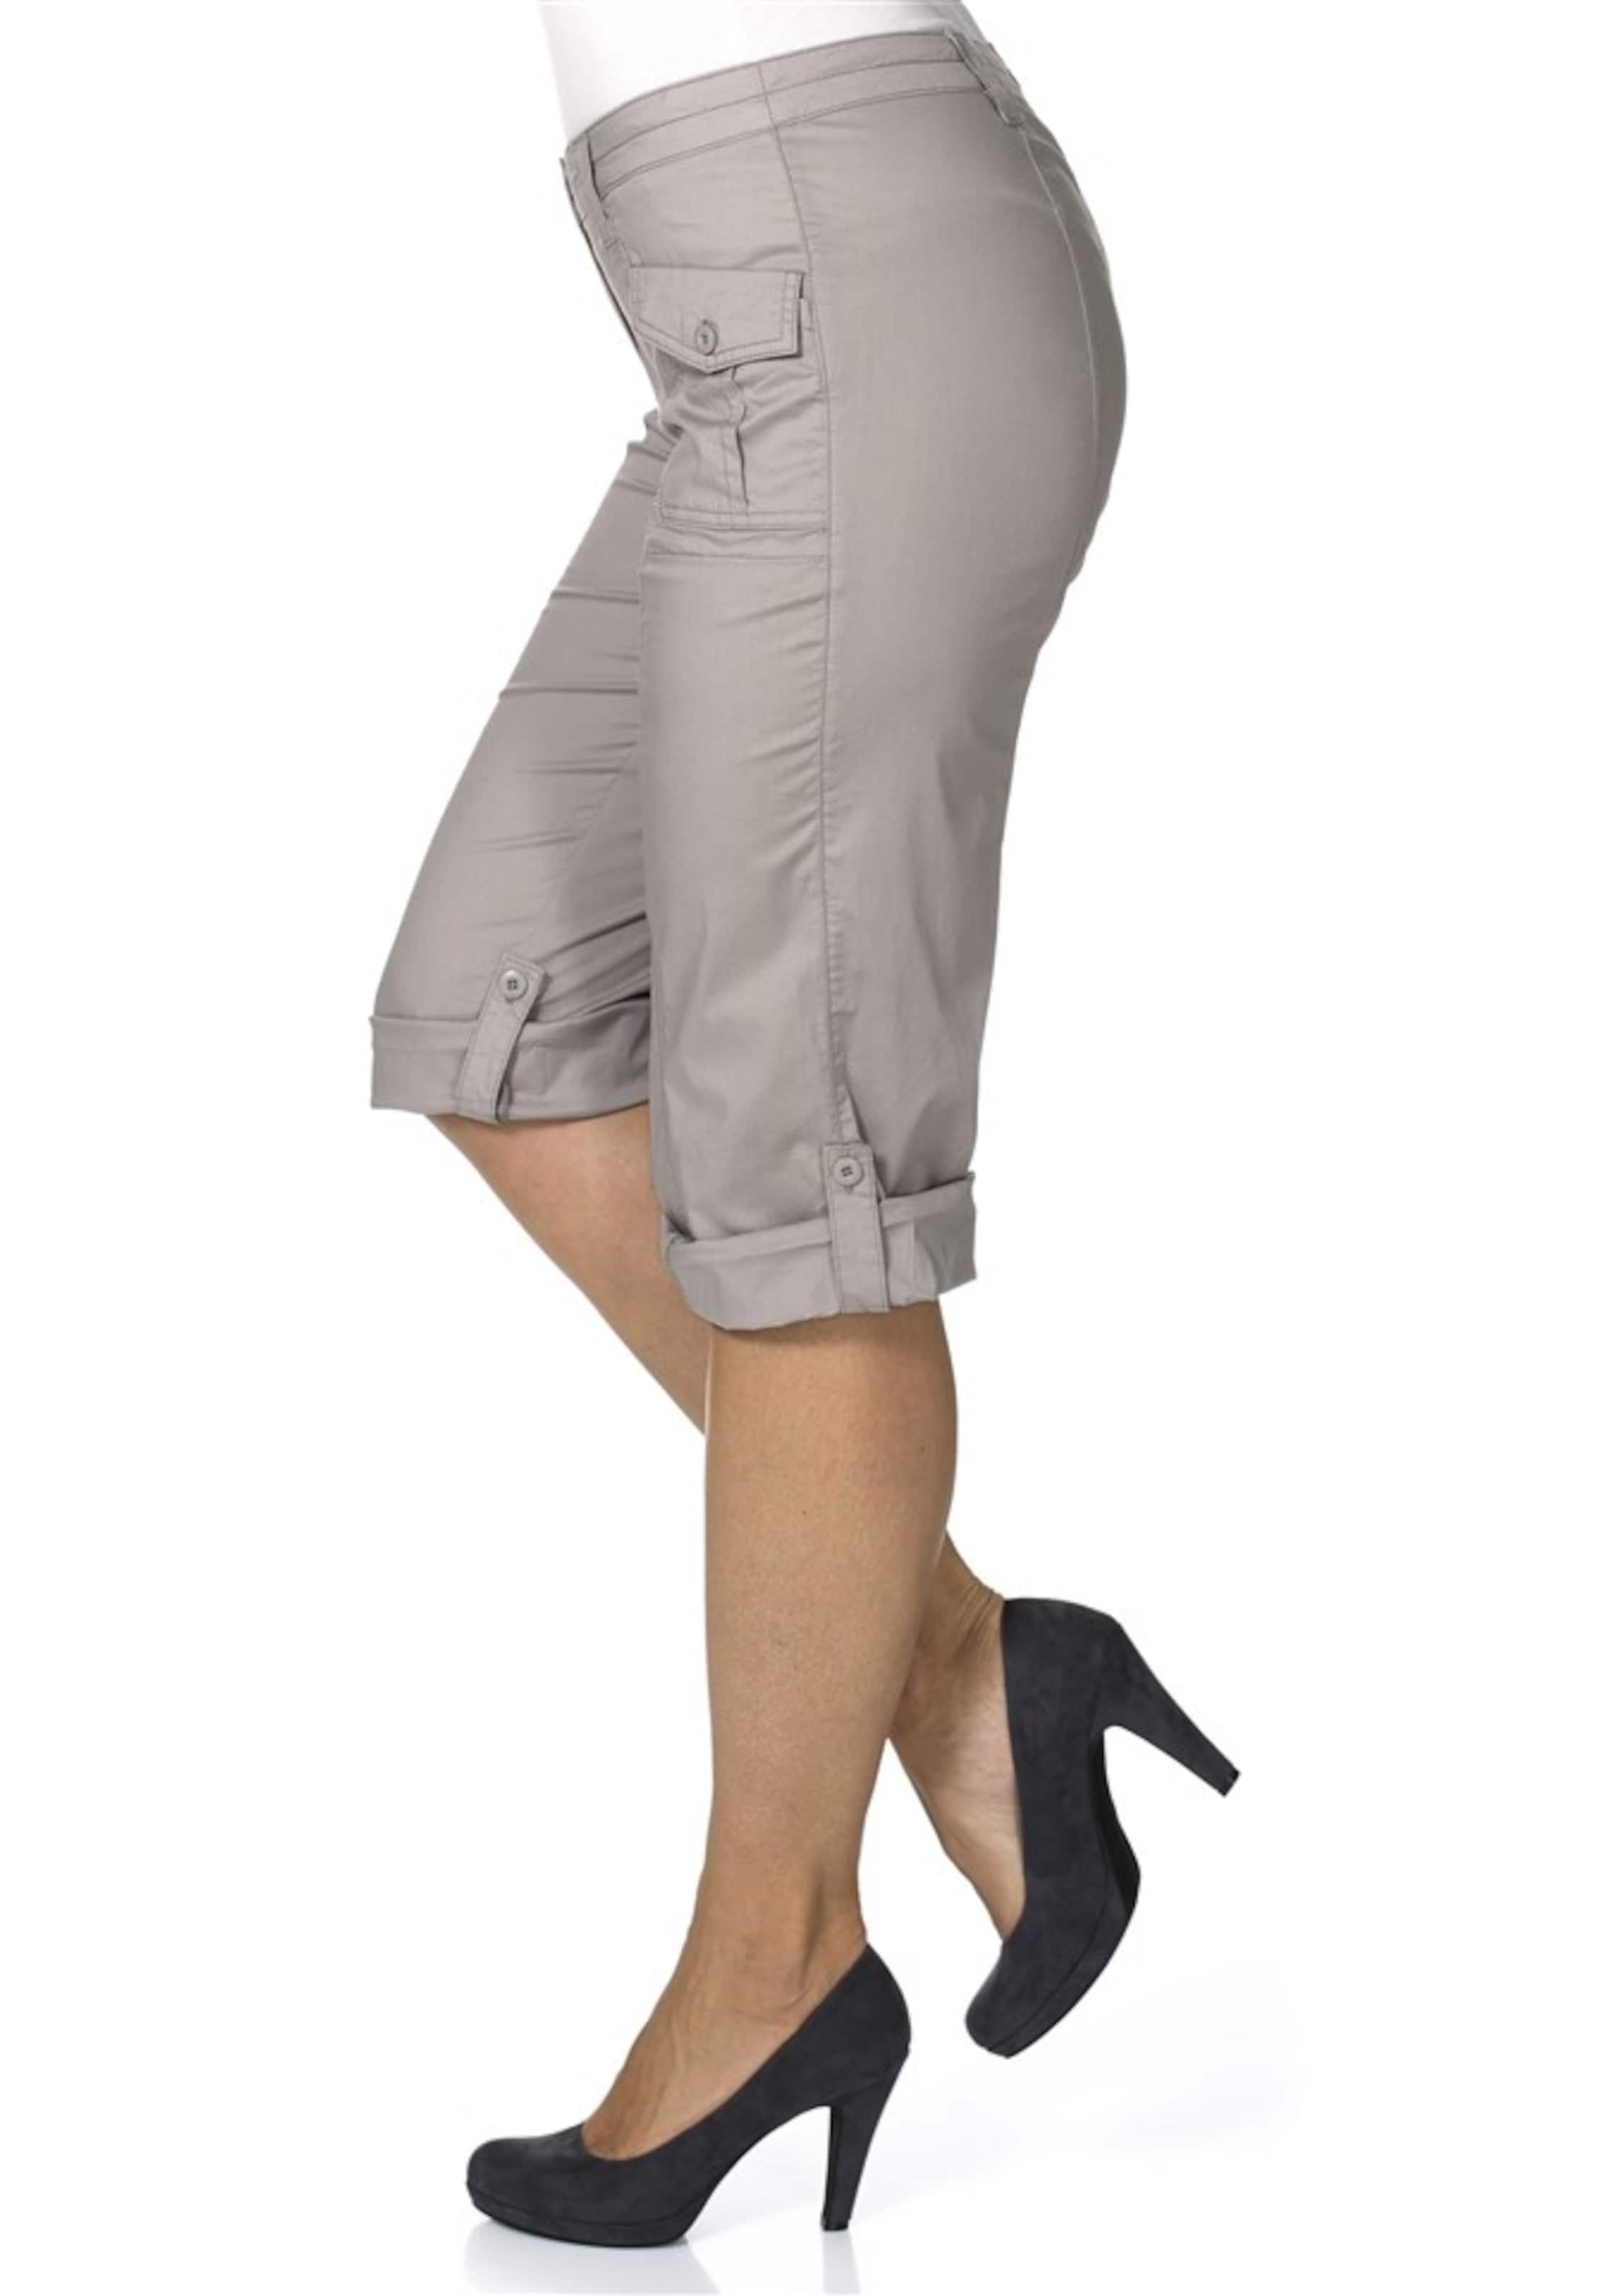 In Beige stretch Komfortable Sheego ¾ Casual hose v8wnyOm0PN